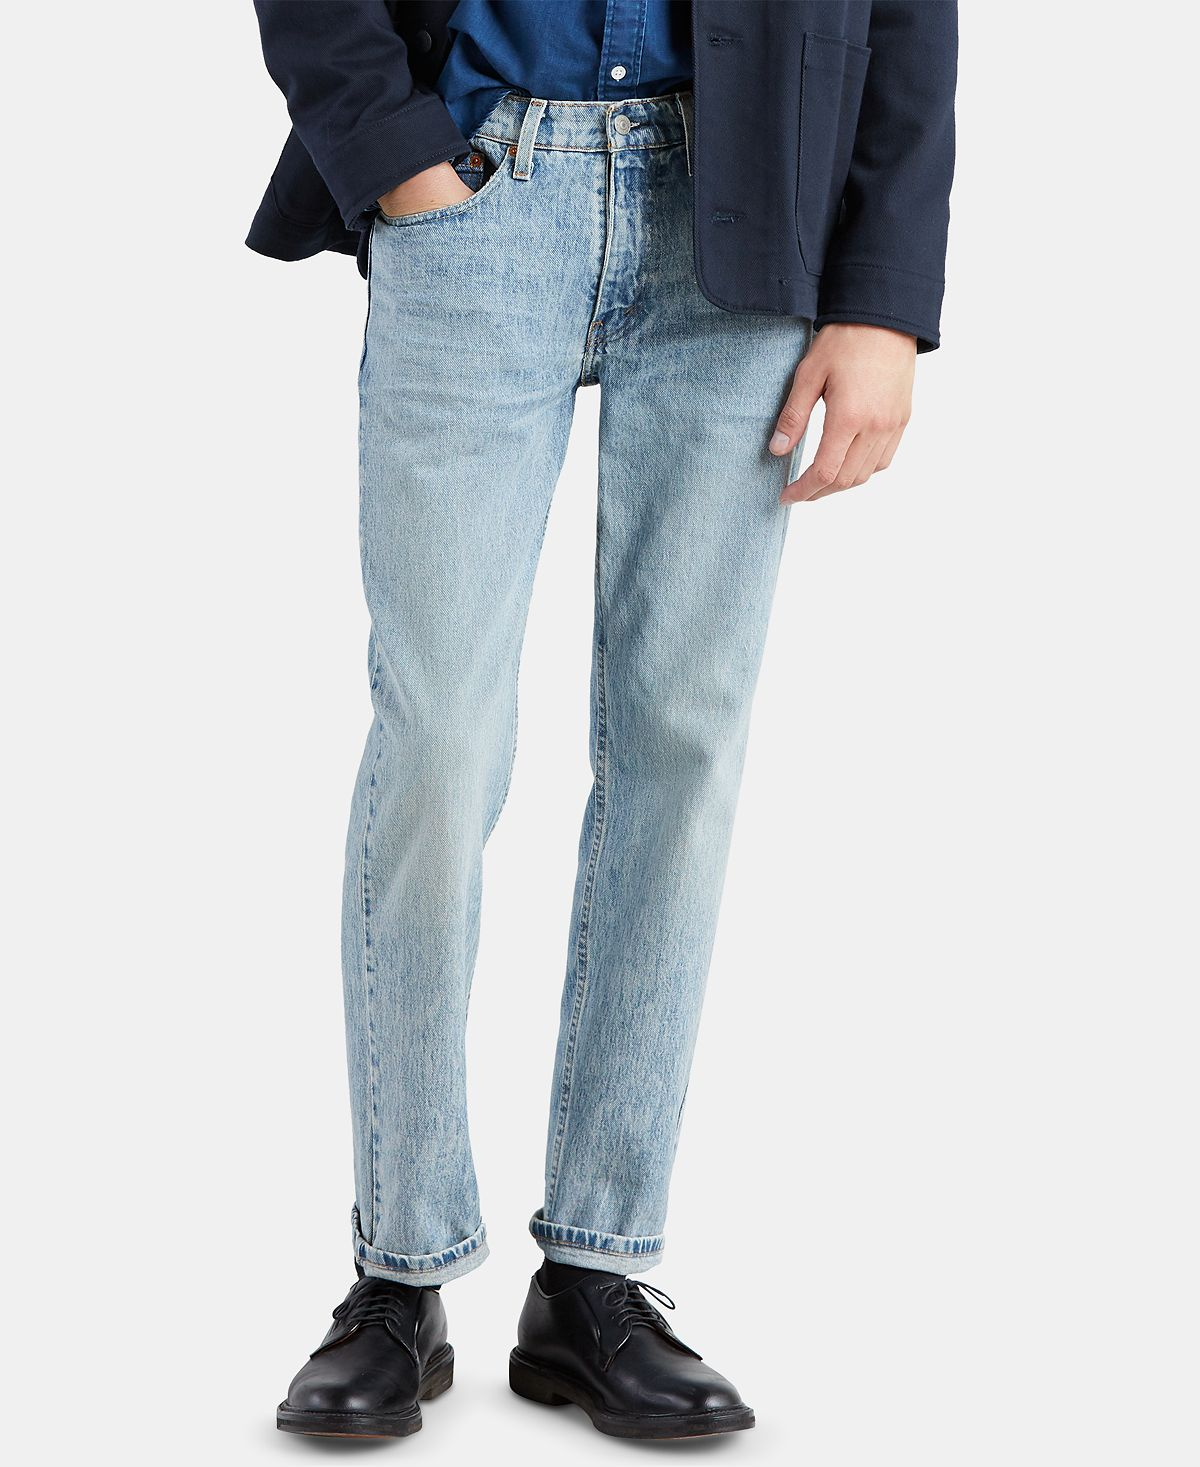 Levi's 514 Straight Fit Jeans Chiapas